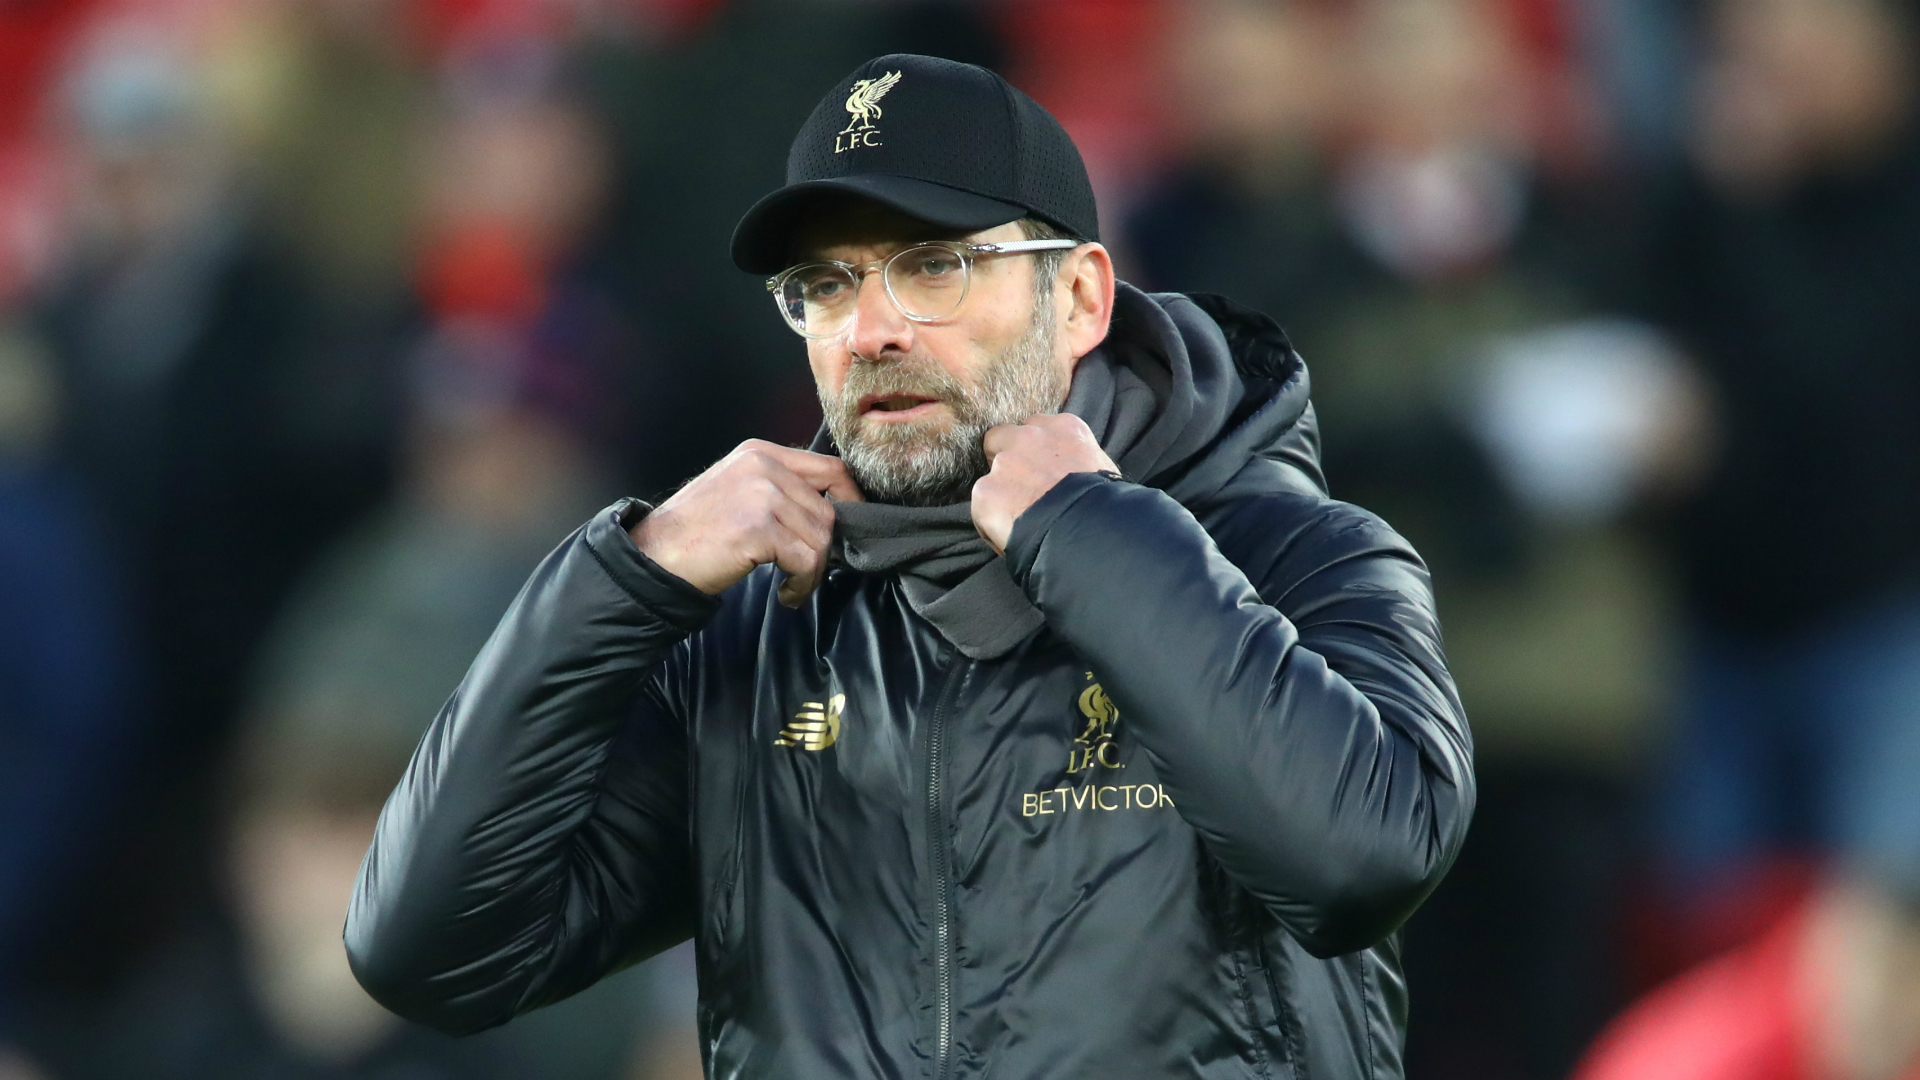 Klopp: Manchester United's squad 'one of the strongest in Europe'